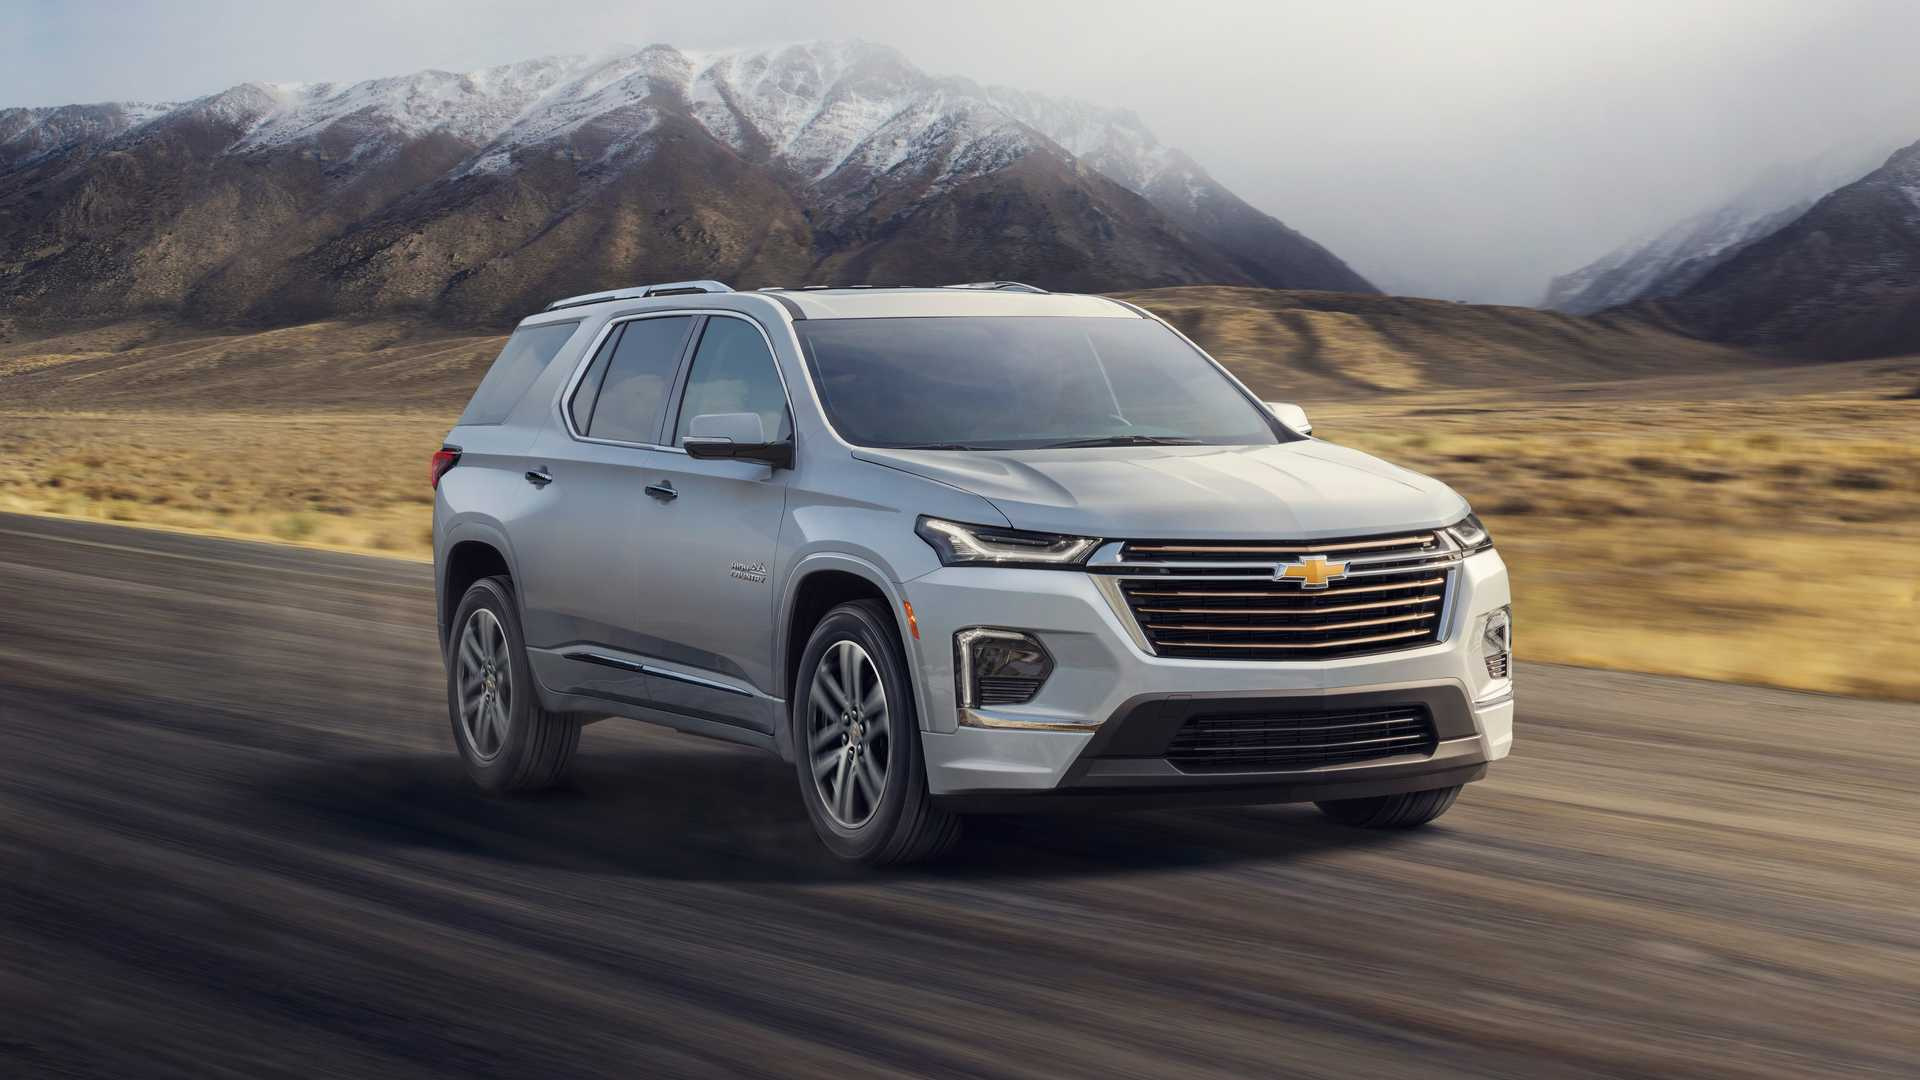 Chevrolet Traverse Facelift (2020) 5